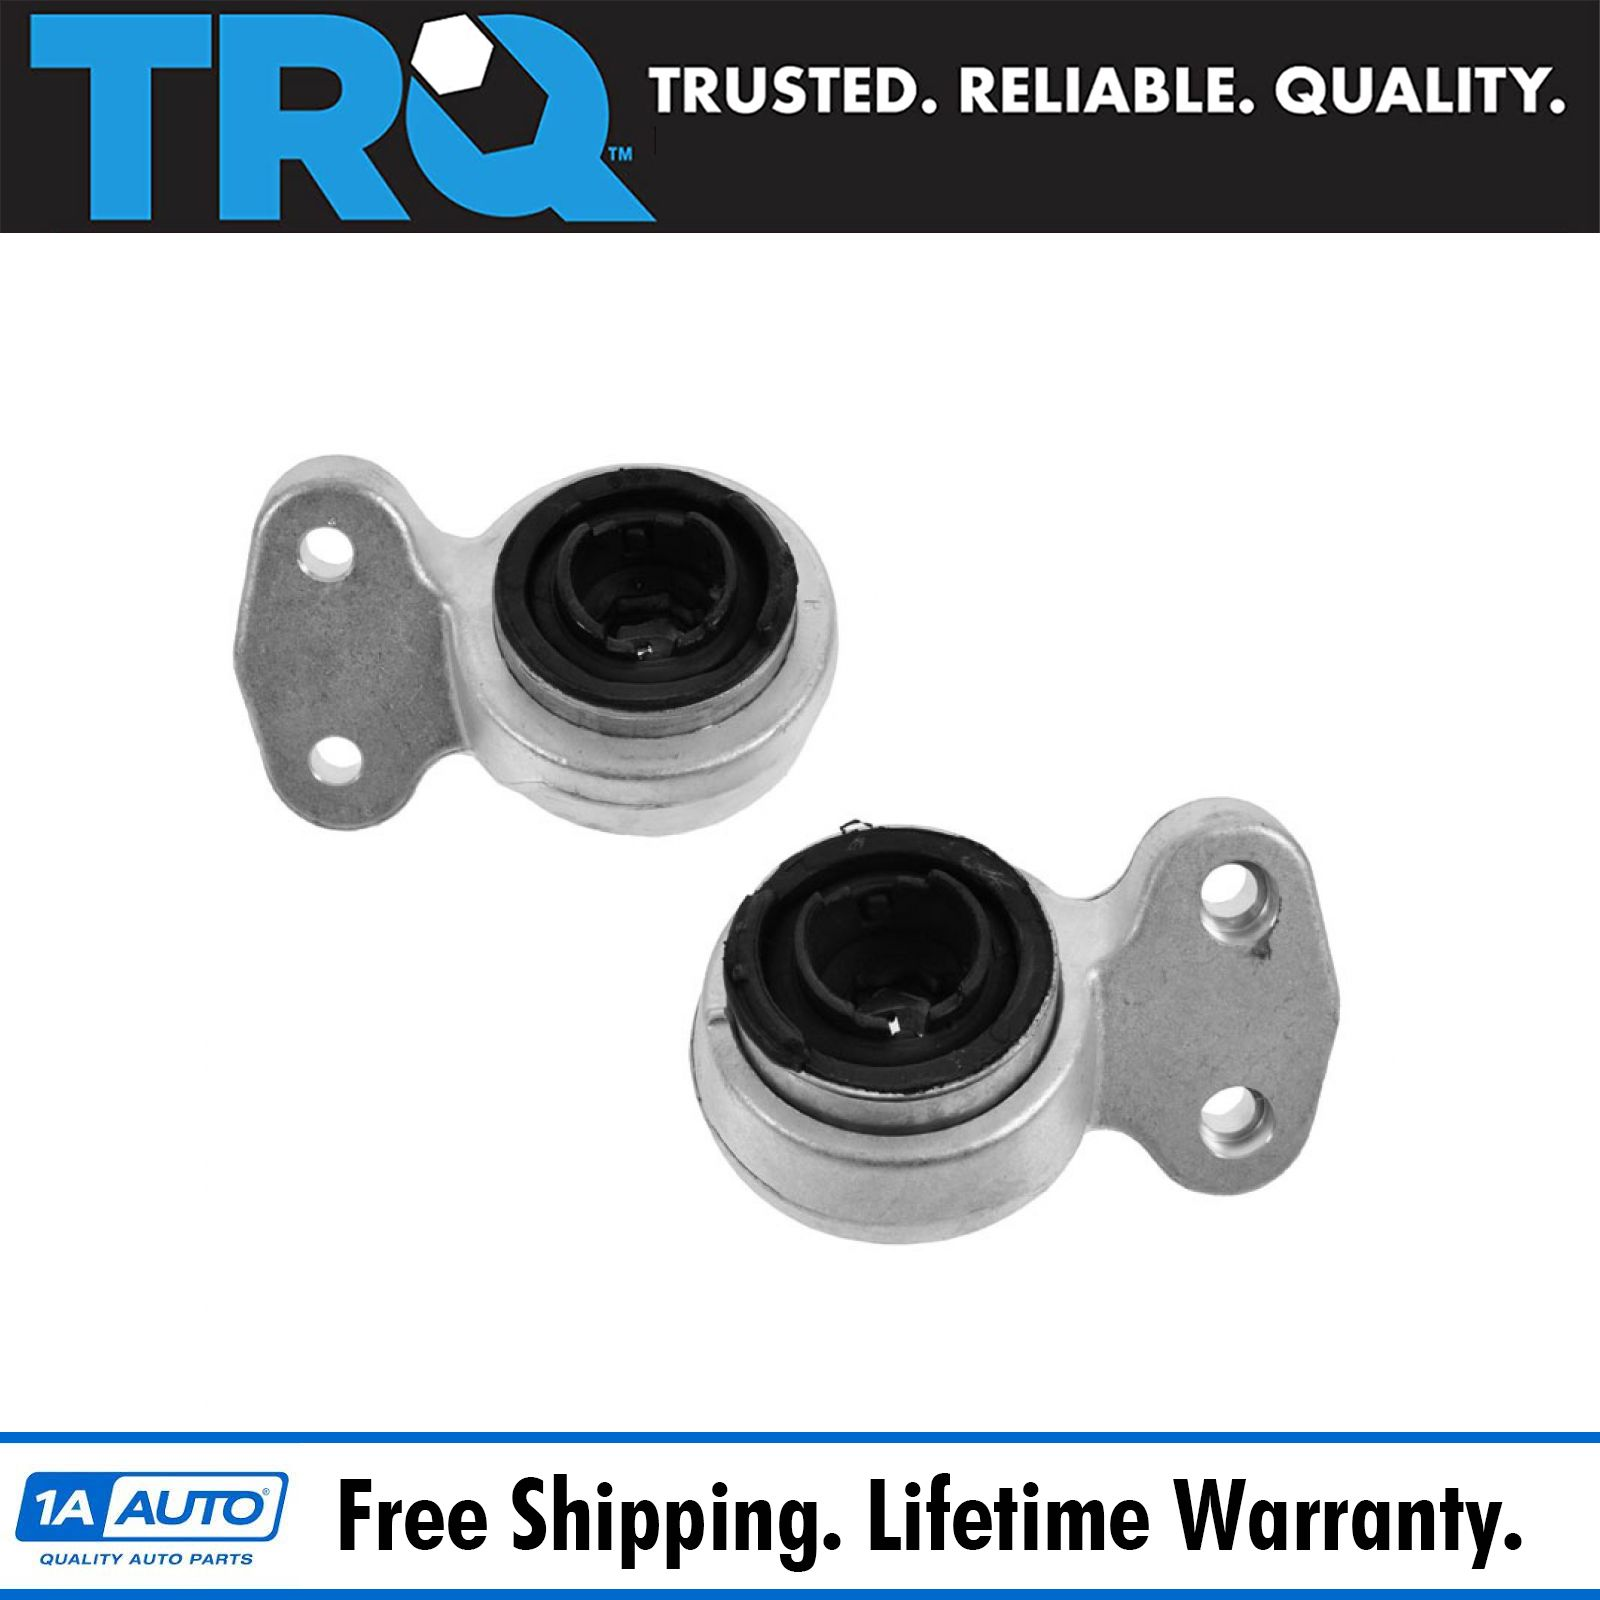 Set of 2 Front Lower Control Arm Bushings Left Right BMW E46 325Ci 325i 330i